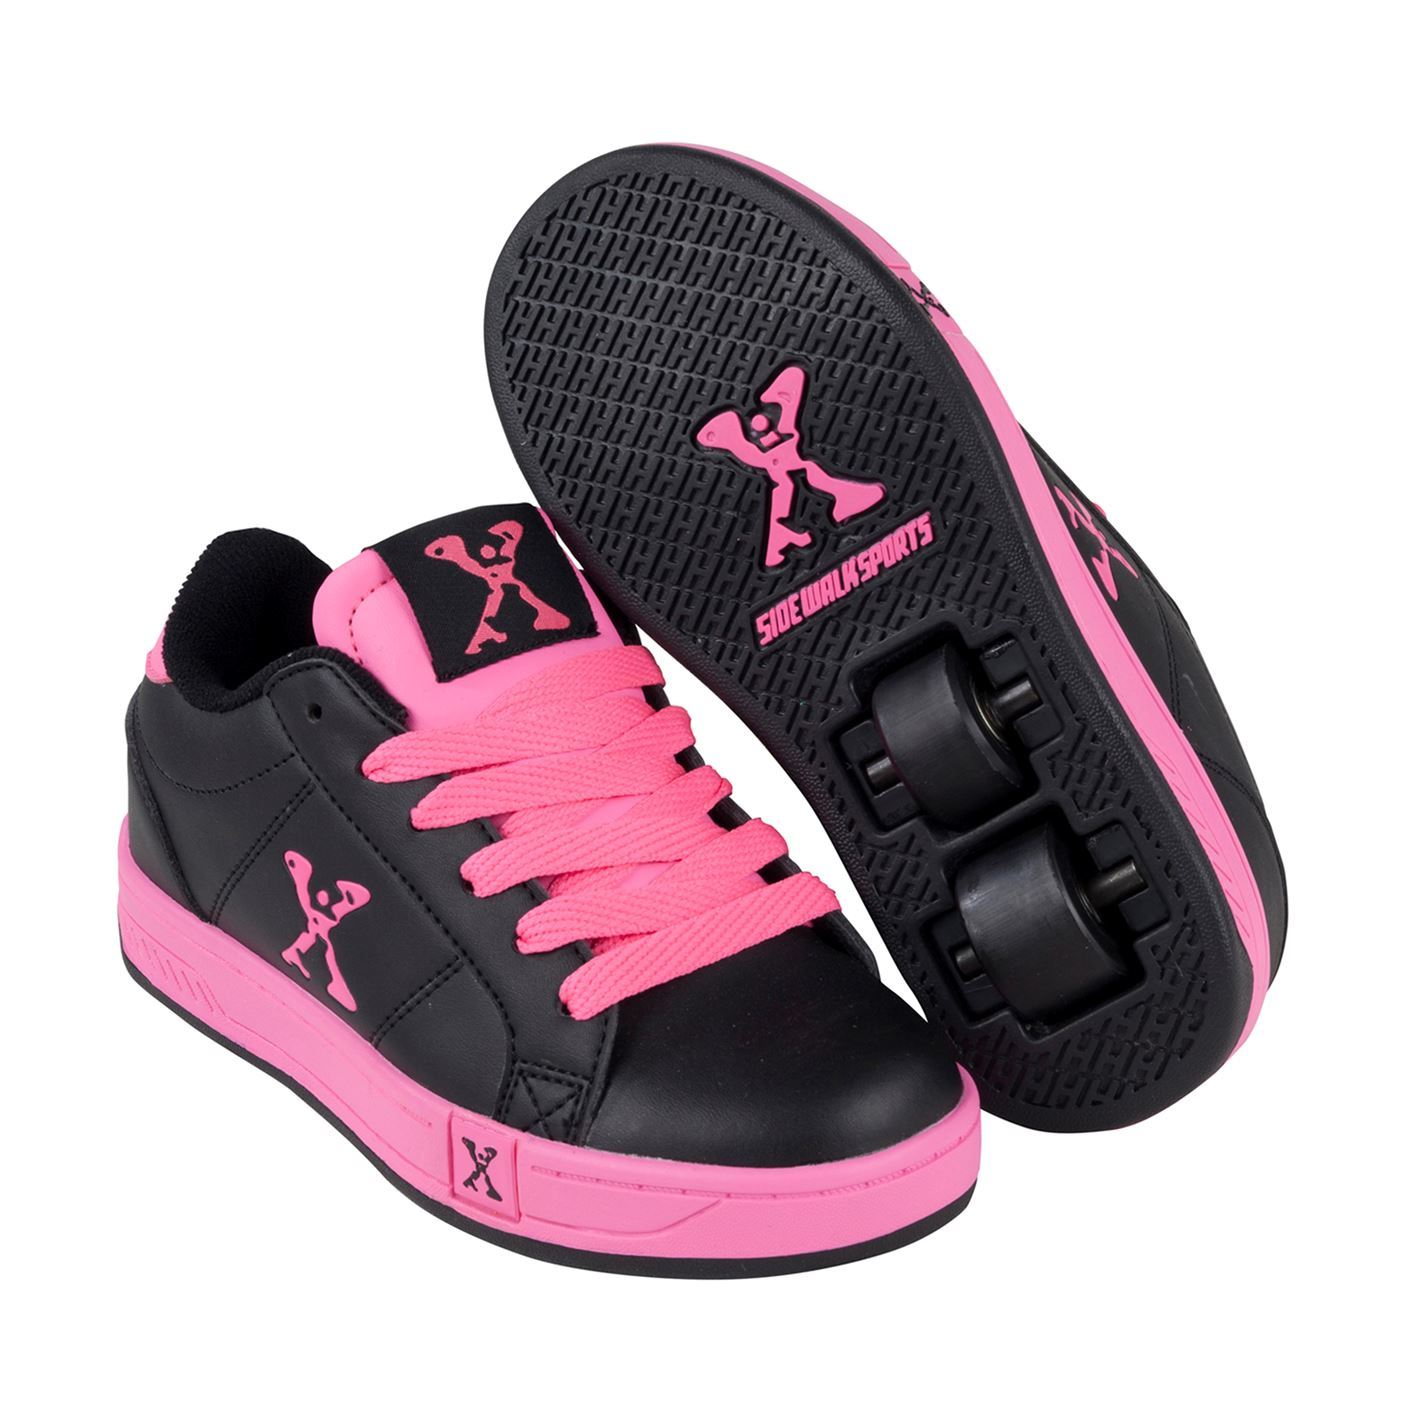 Kids Skate Shoes Amazon